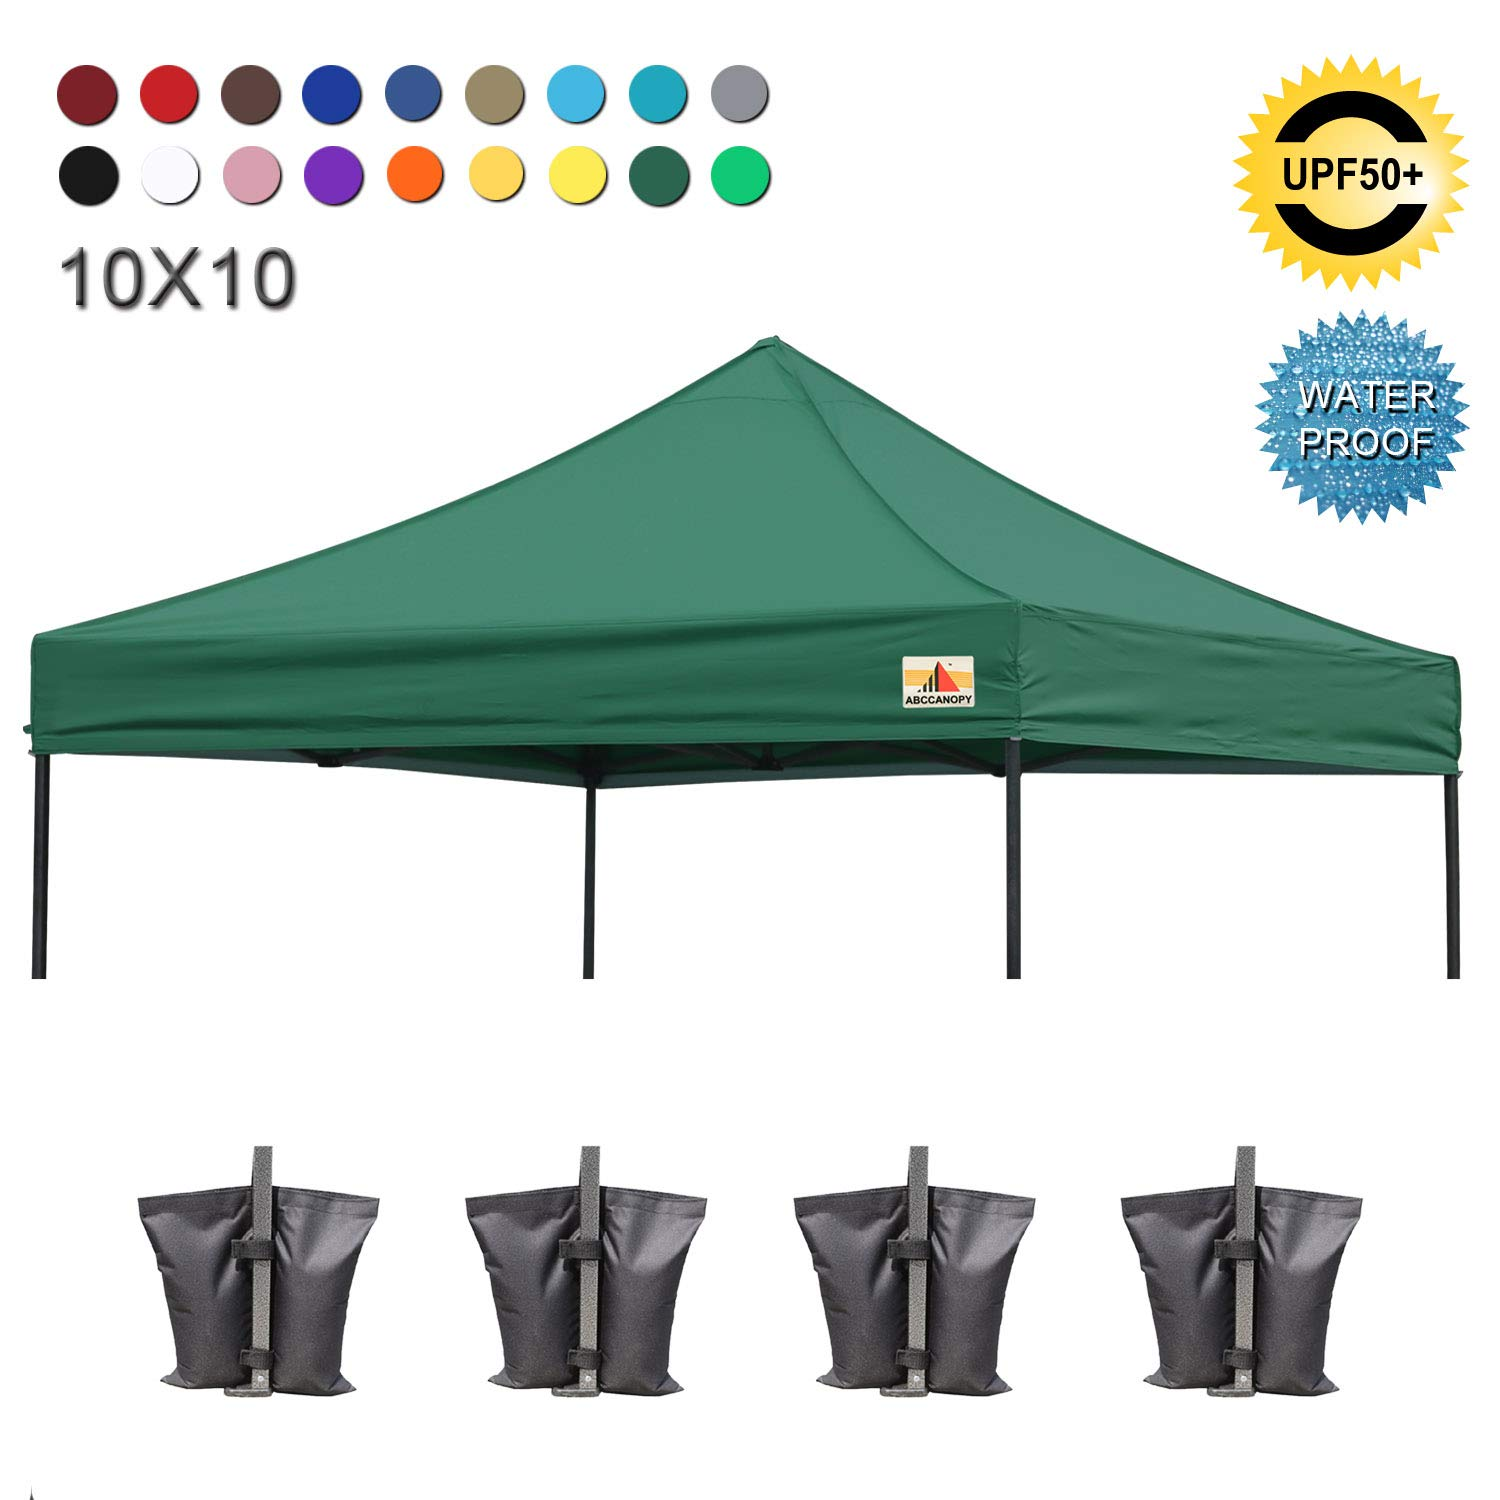 ABCCANOPY Replacement Top Cover 100 Waterproof 18 Colors 10×10 Pop Up Canopy Tent Top, Bonus 4 x Weight Bags Forest Green